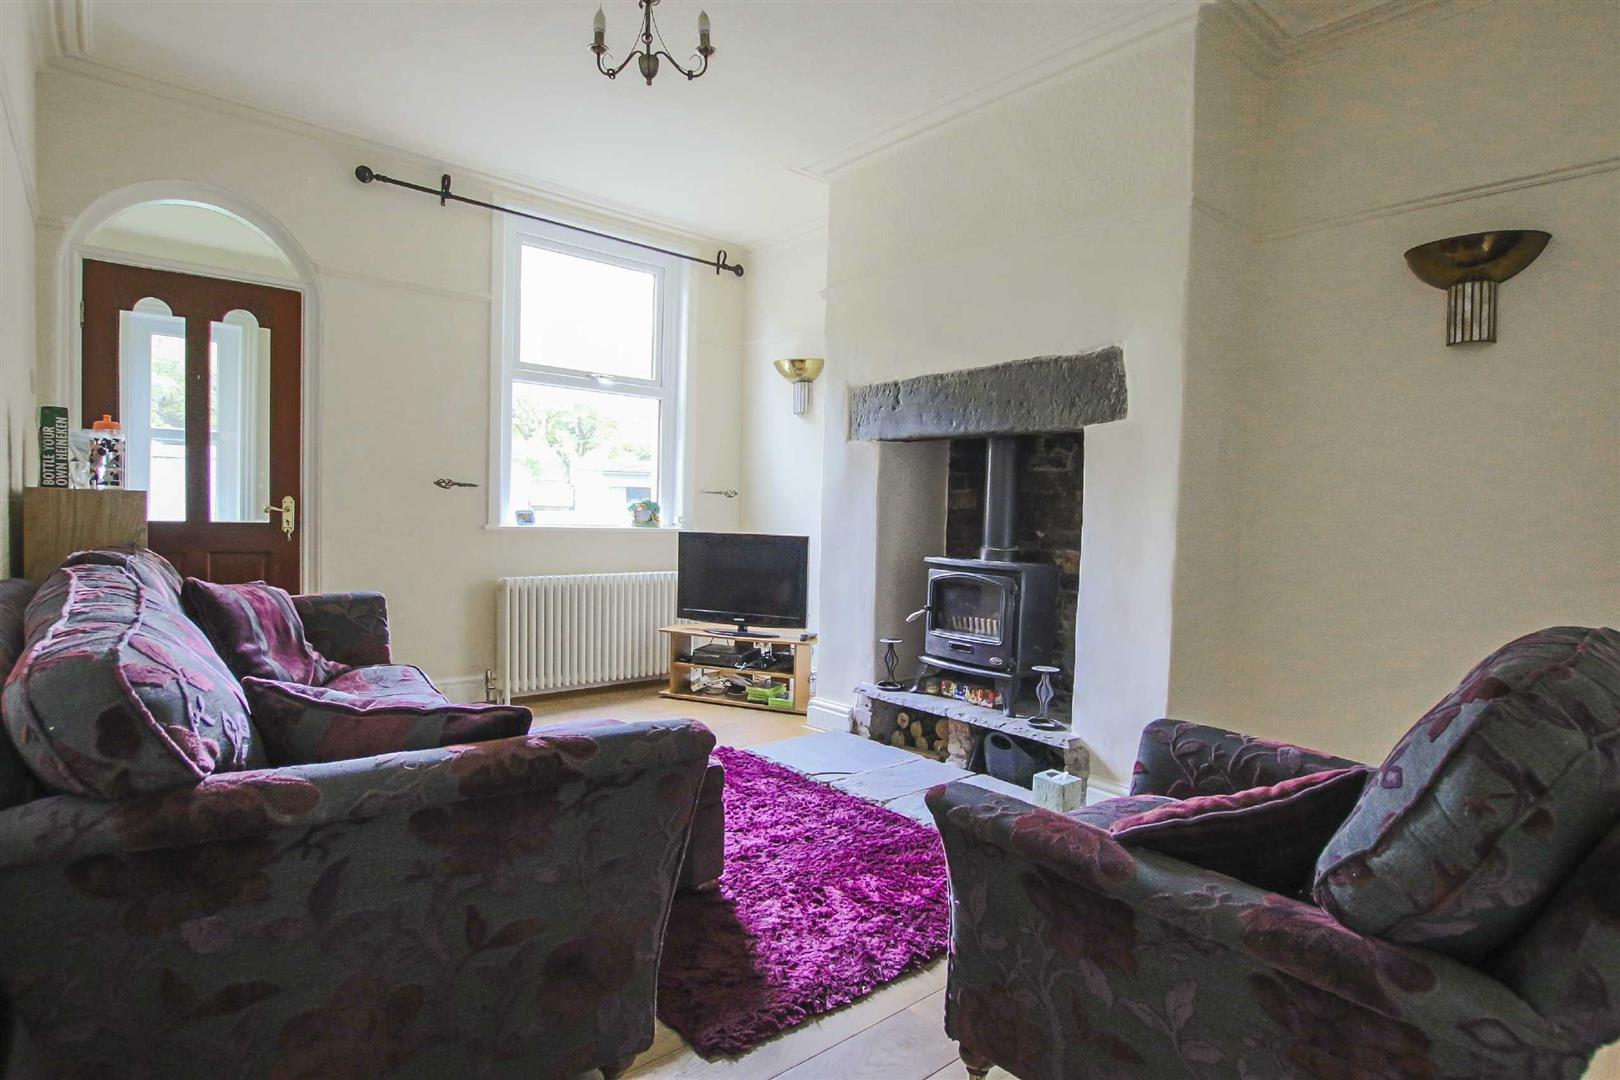 2 Bed Detached House For Sale - Main Image